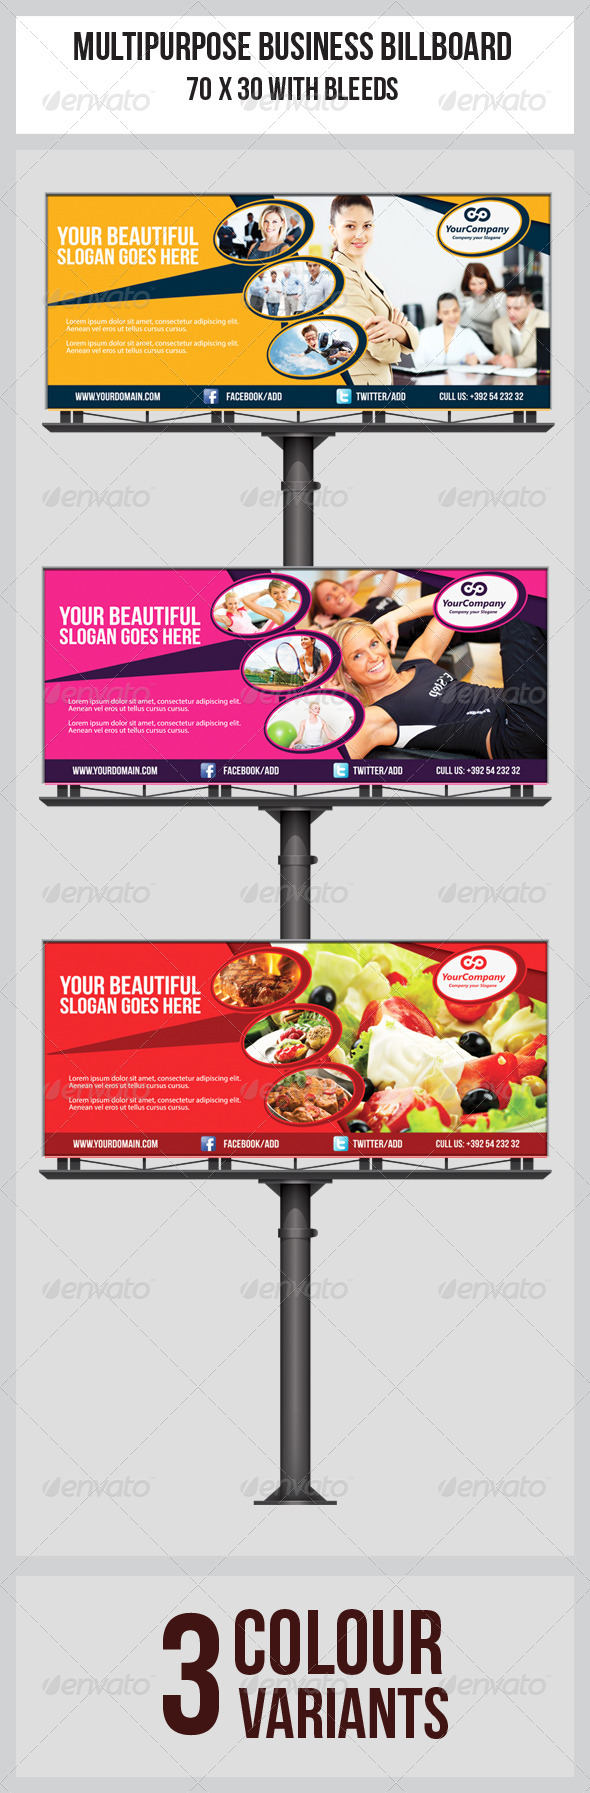 GraphicRiver Multipurpose Business Billboard Template 6173677